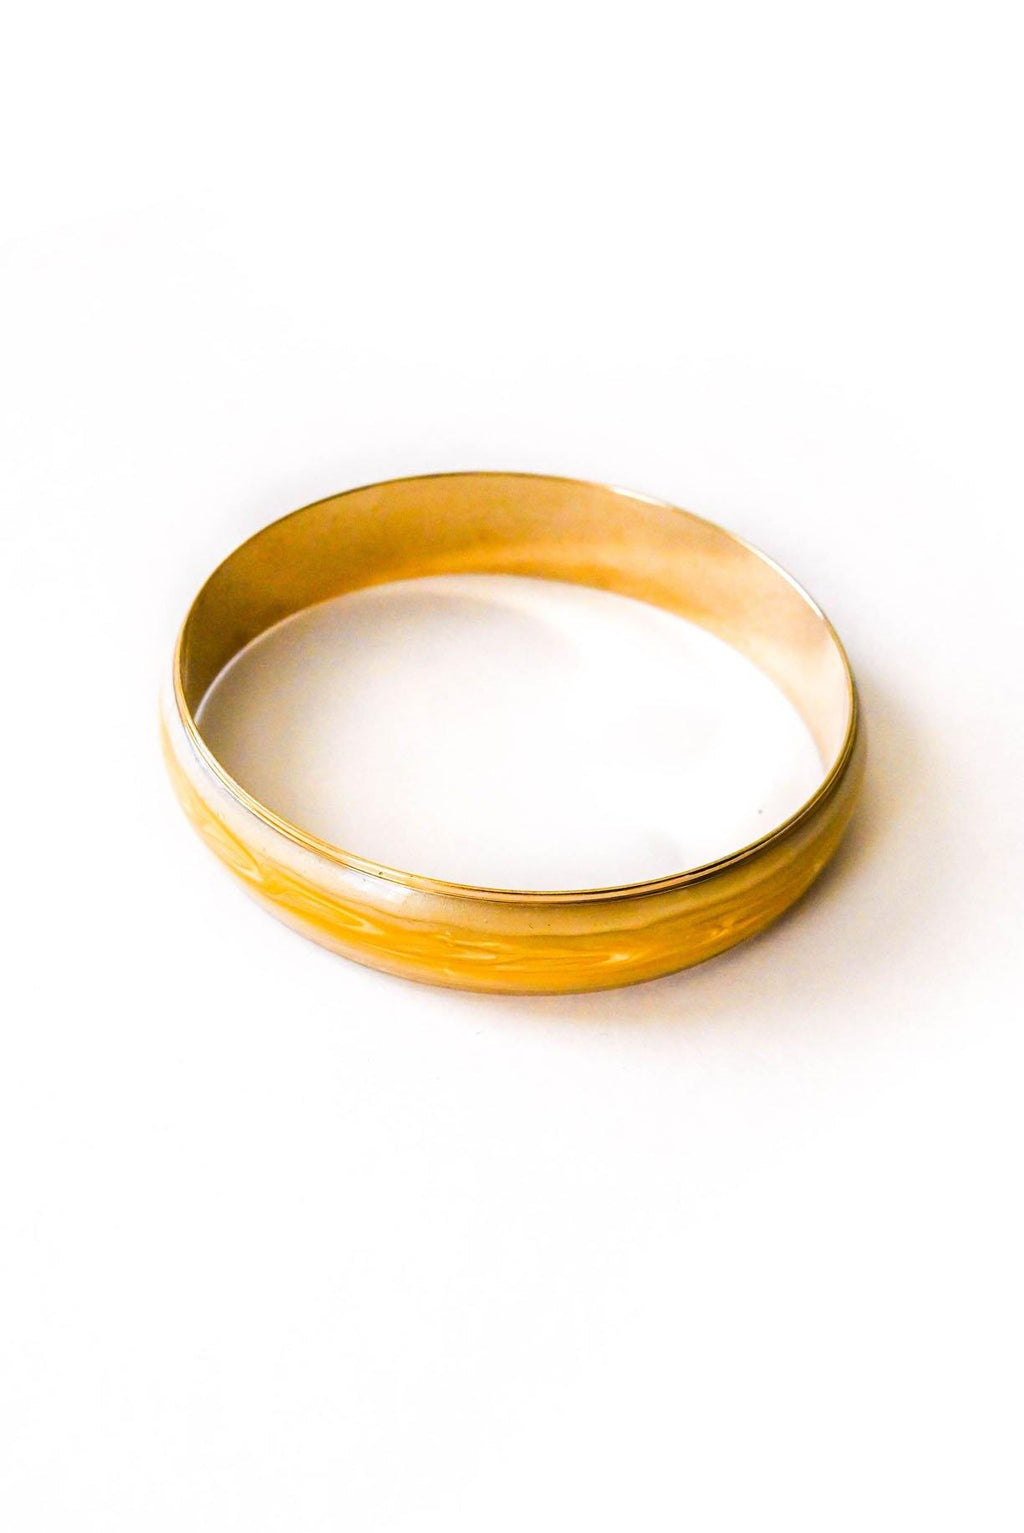 Yellow and Gold Resin Bangle Bracelet